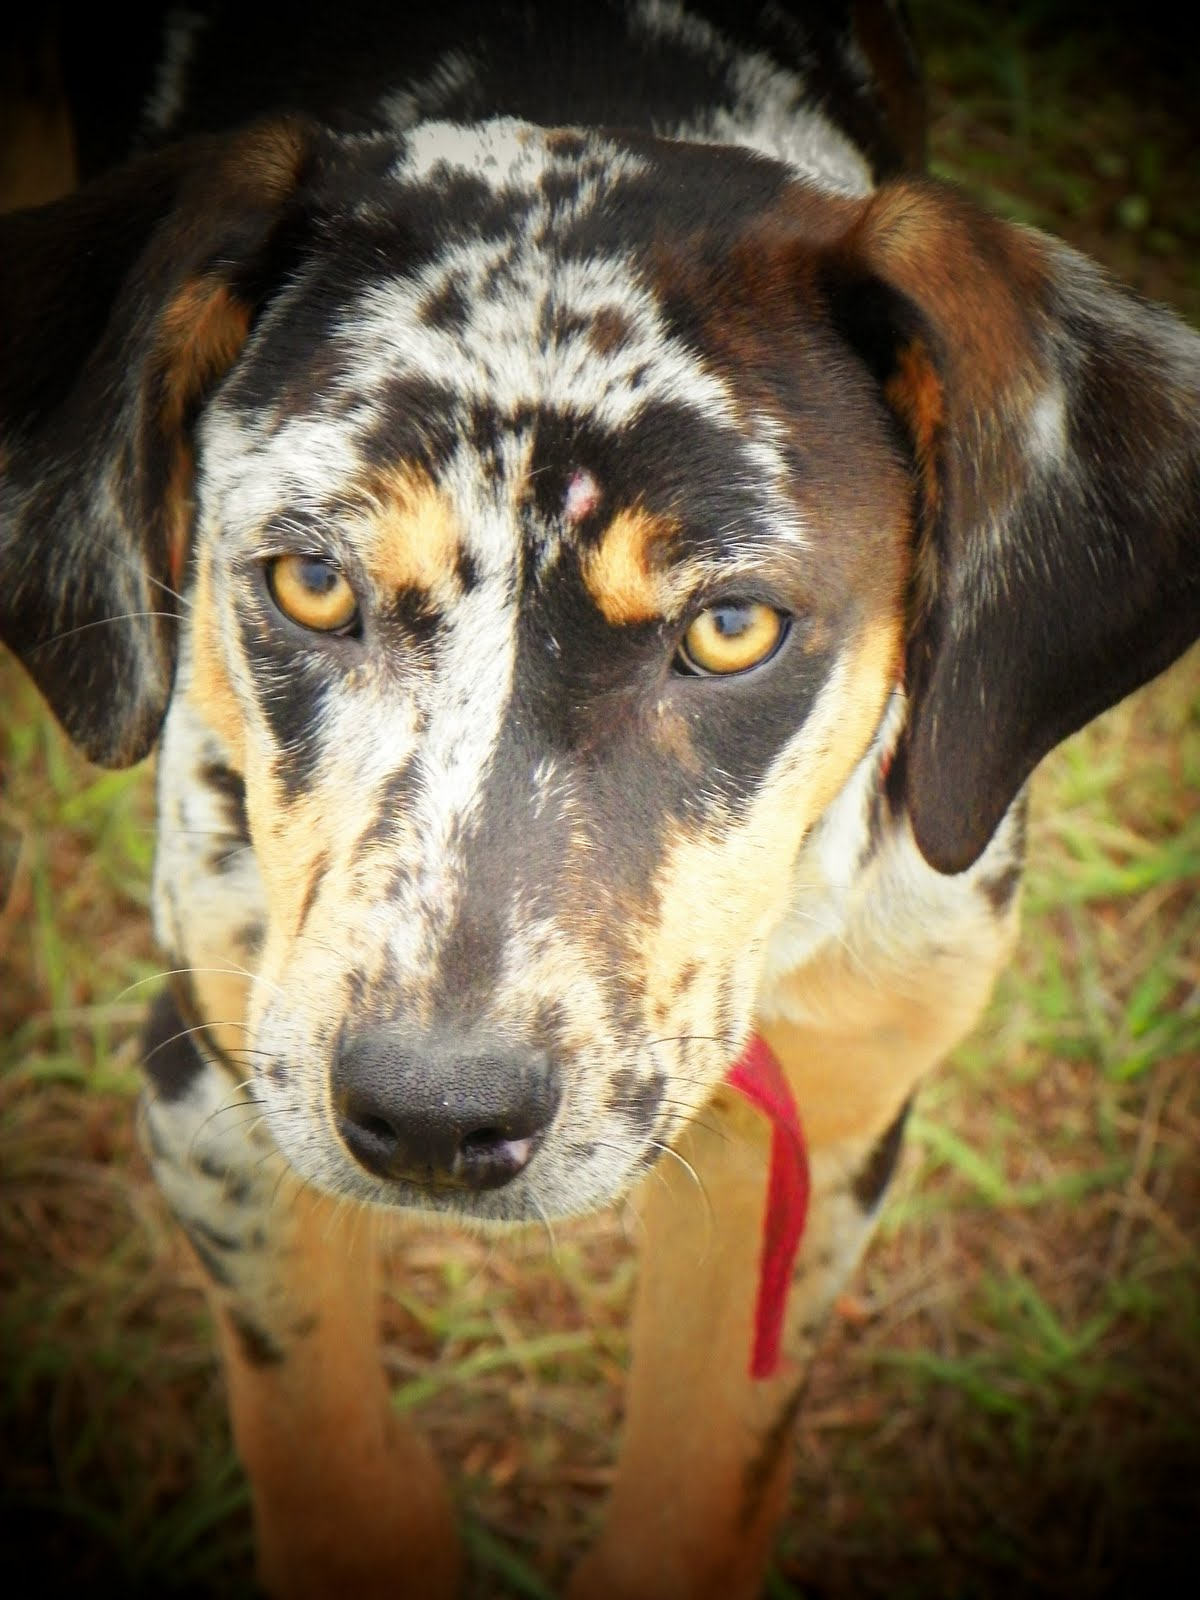 The Catahoula Hog Dog: Hog Dogs For Sale Ain't What They Used To Be!